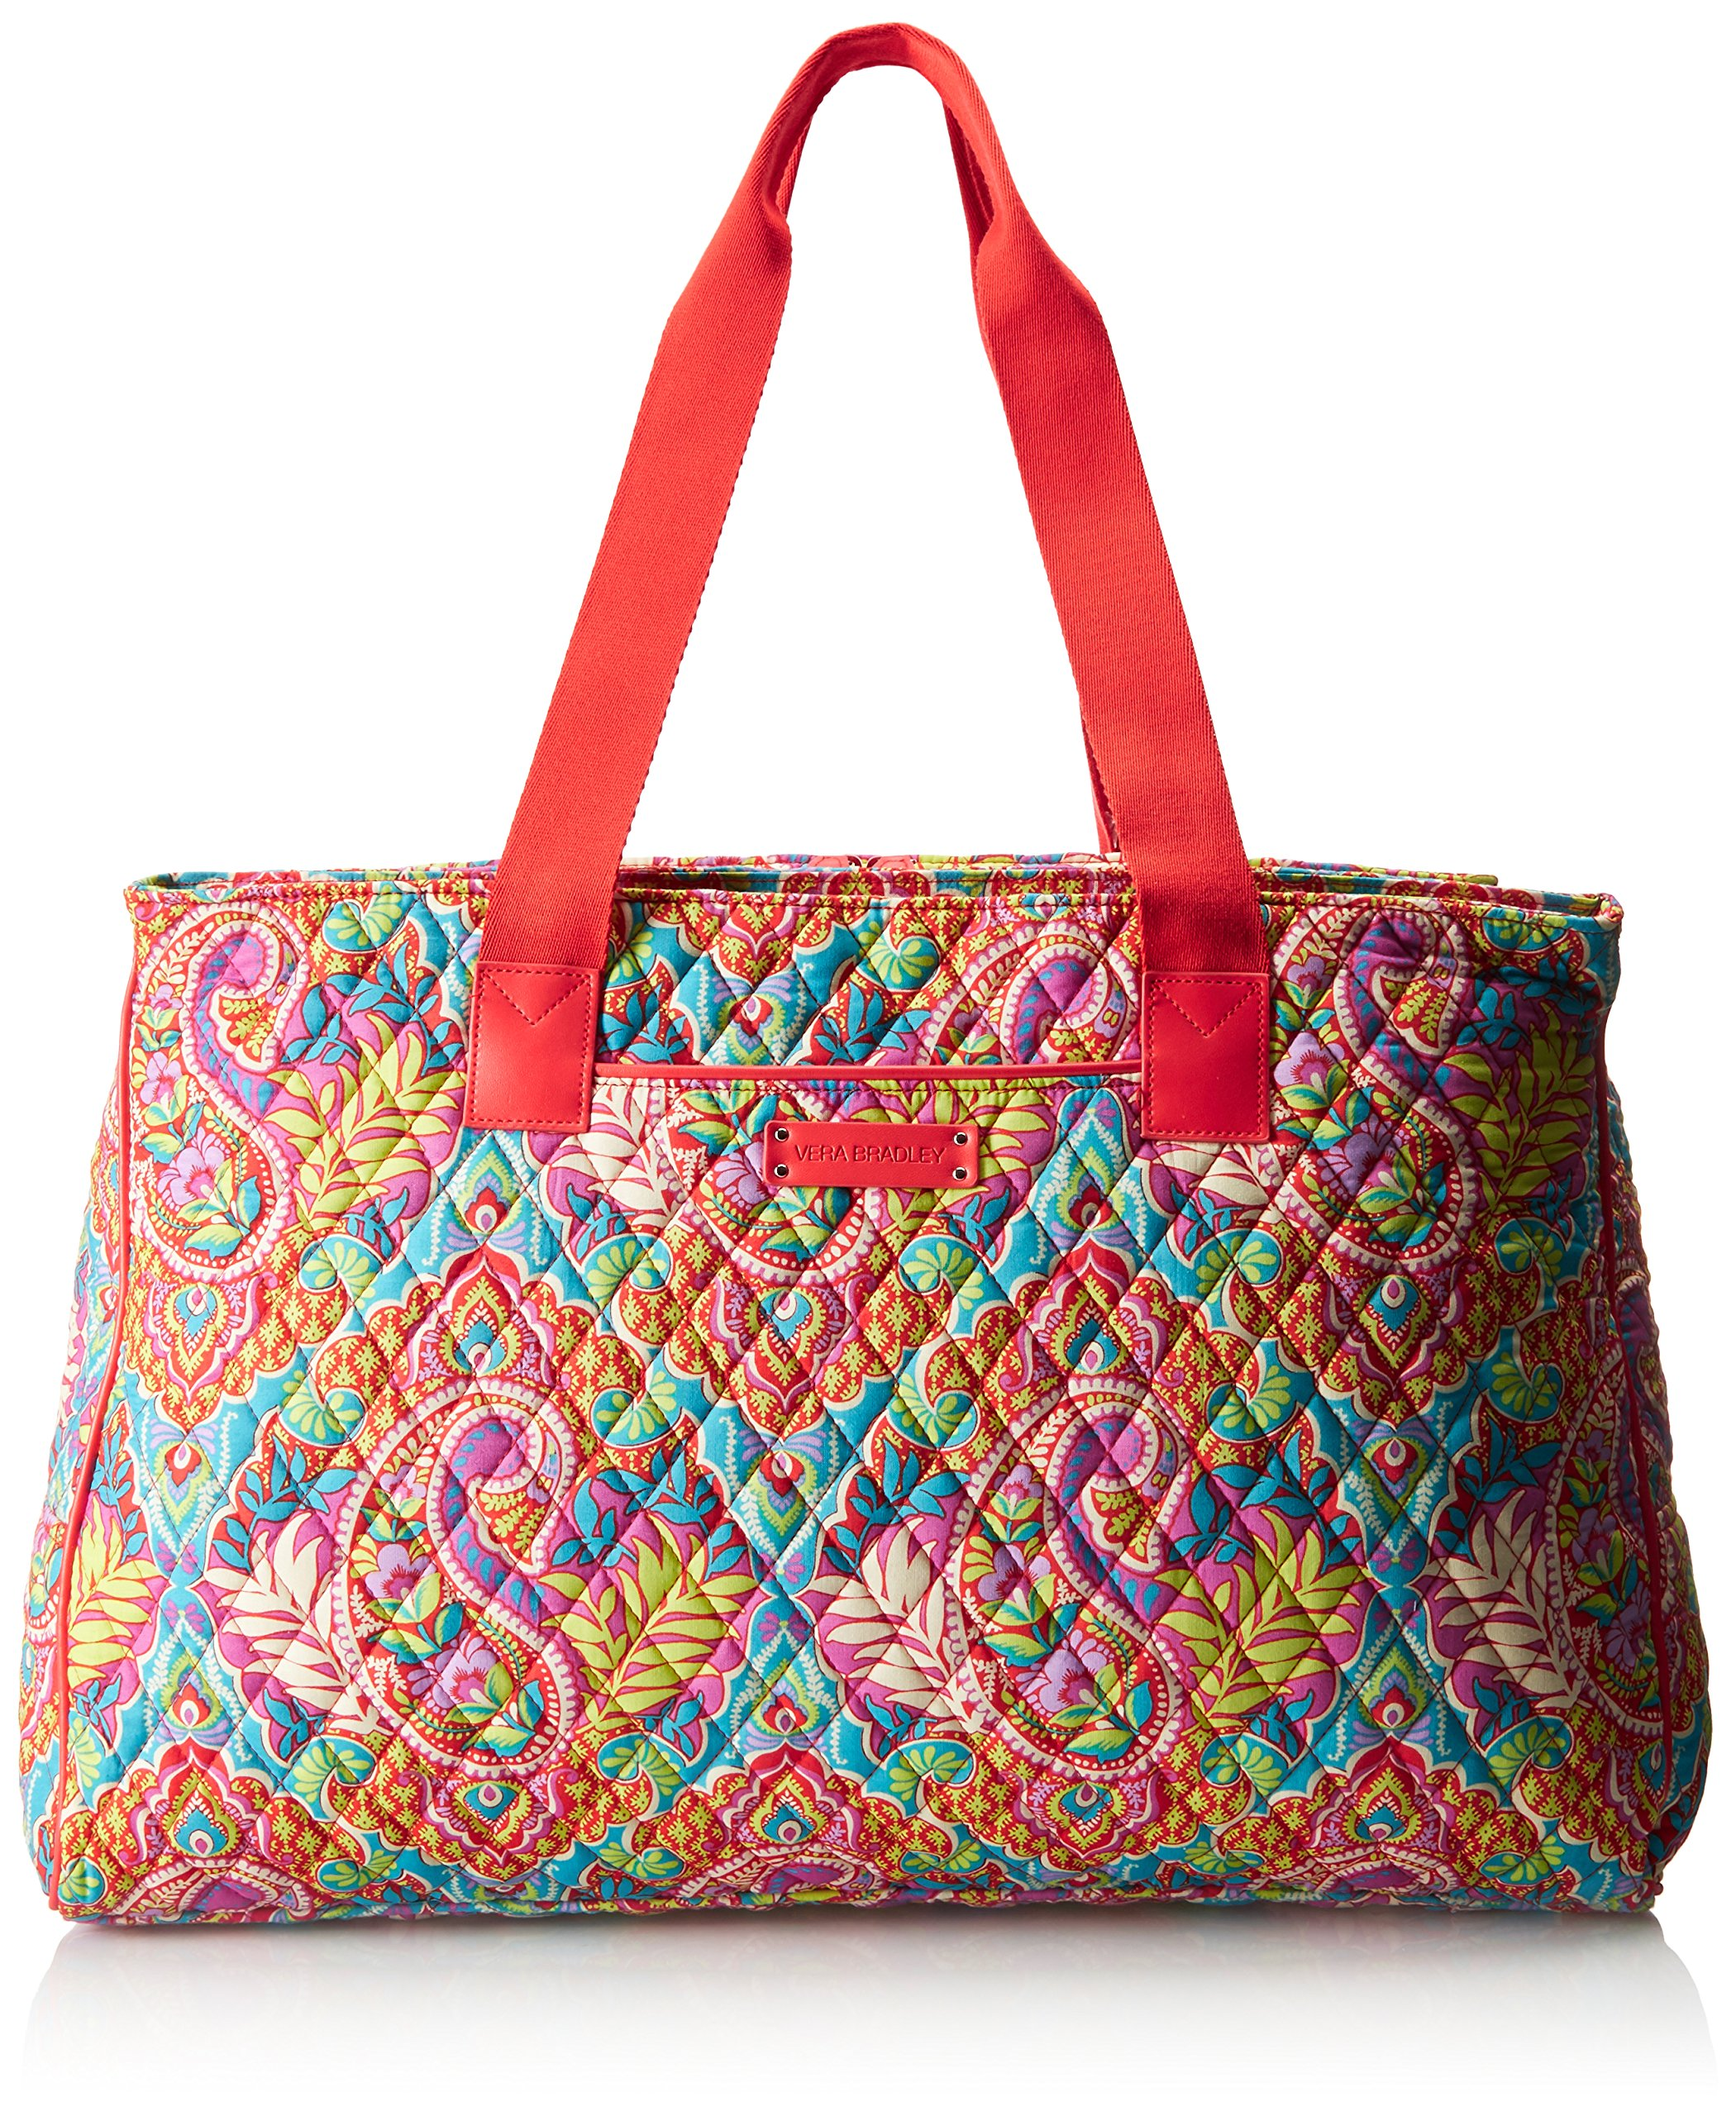 Vera Bradley Women's Triple Compartment Travel Bag, Paisley in Paradise Red by Vera Bradley (Image #1)